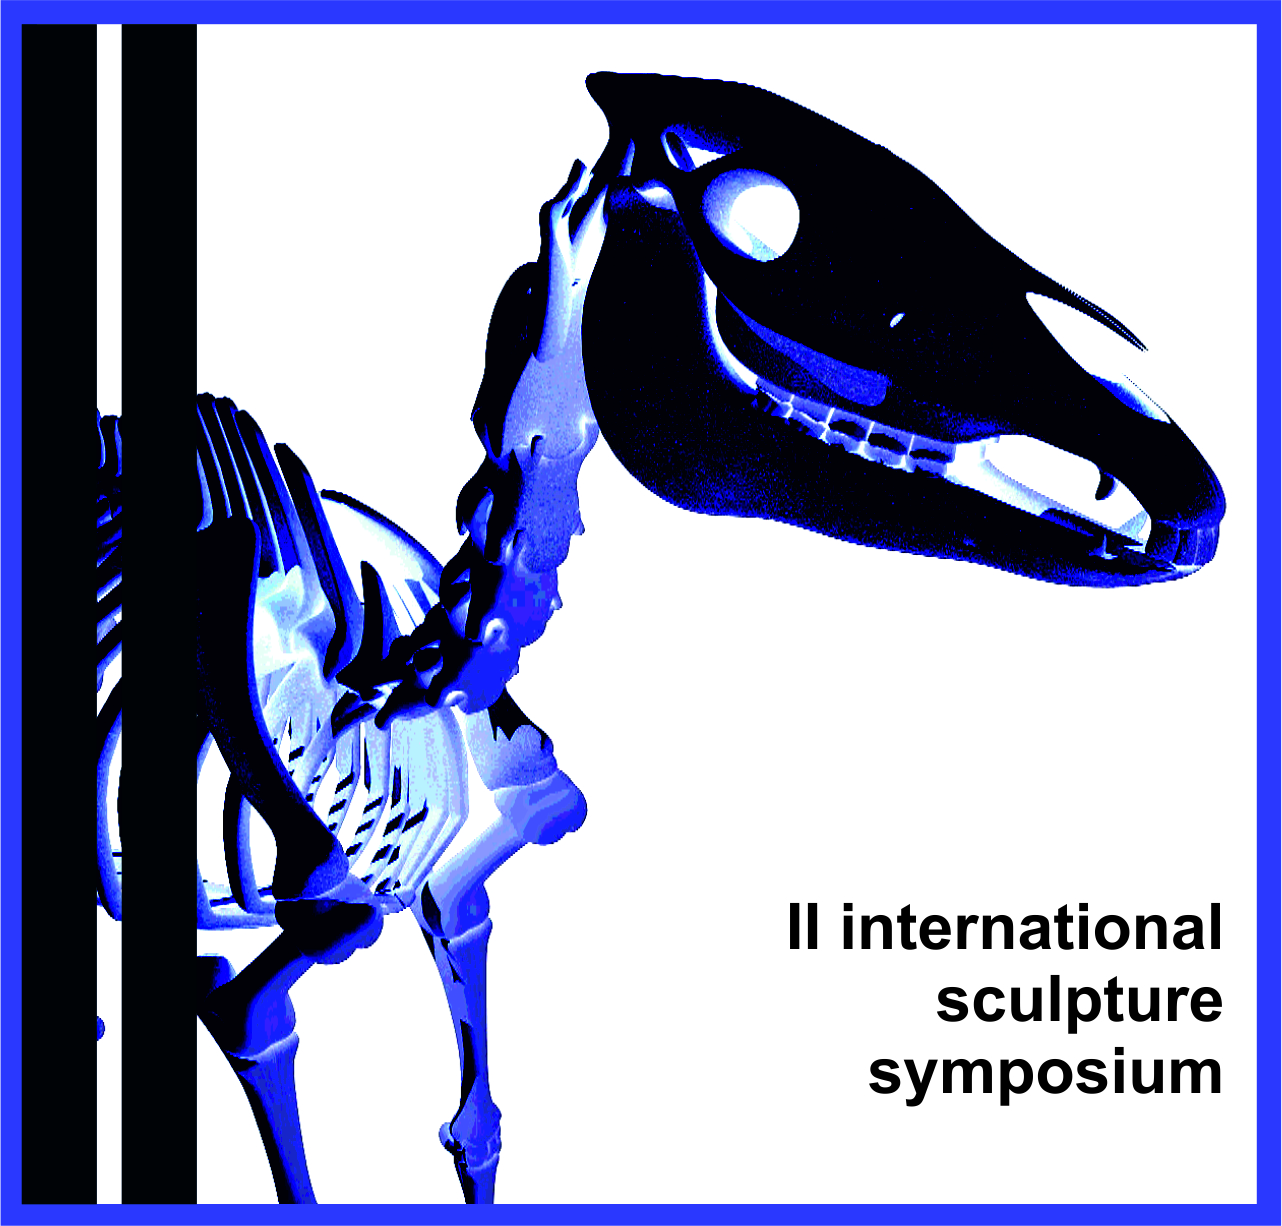 II International Sculpture Symposium